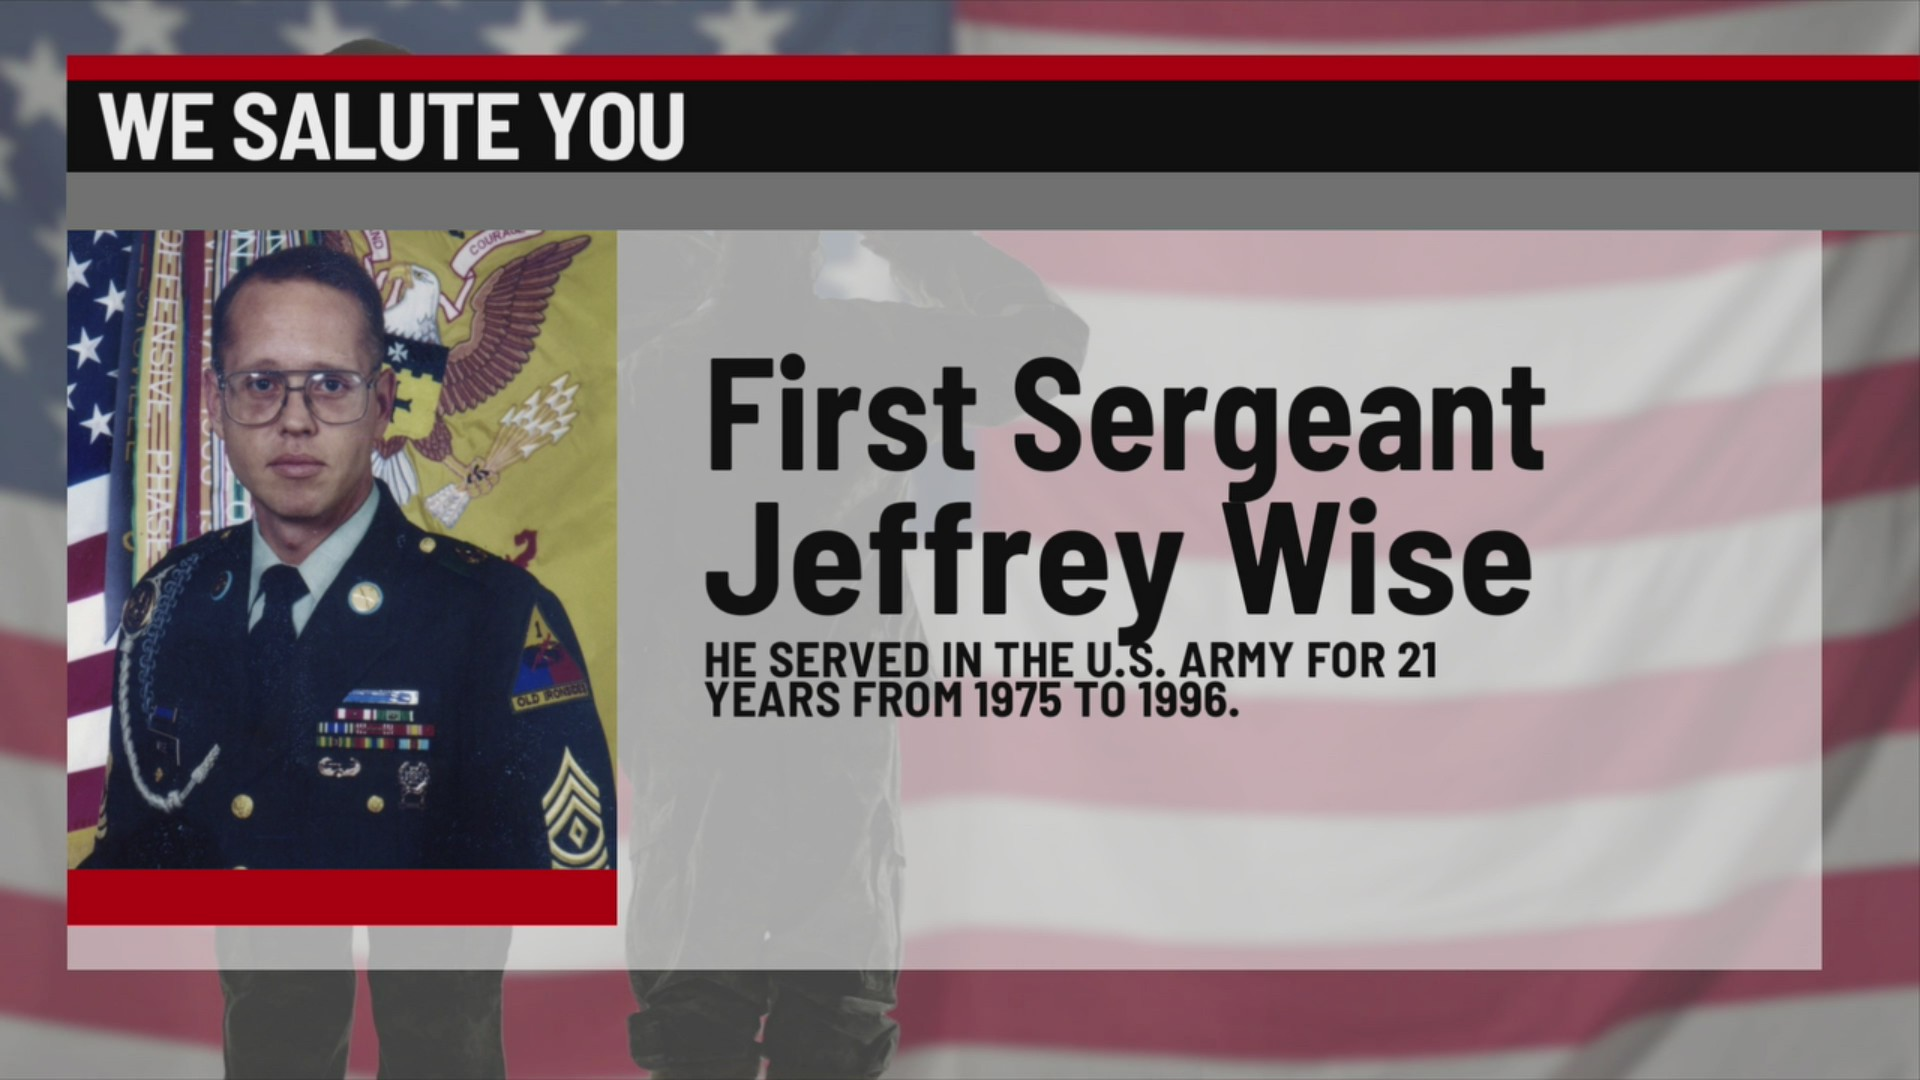 We Salute You Jeffrey Wise